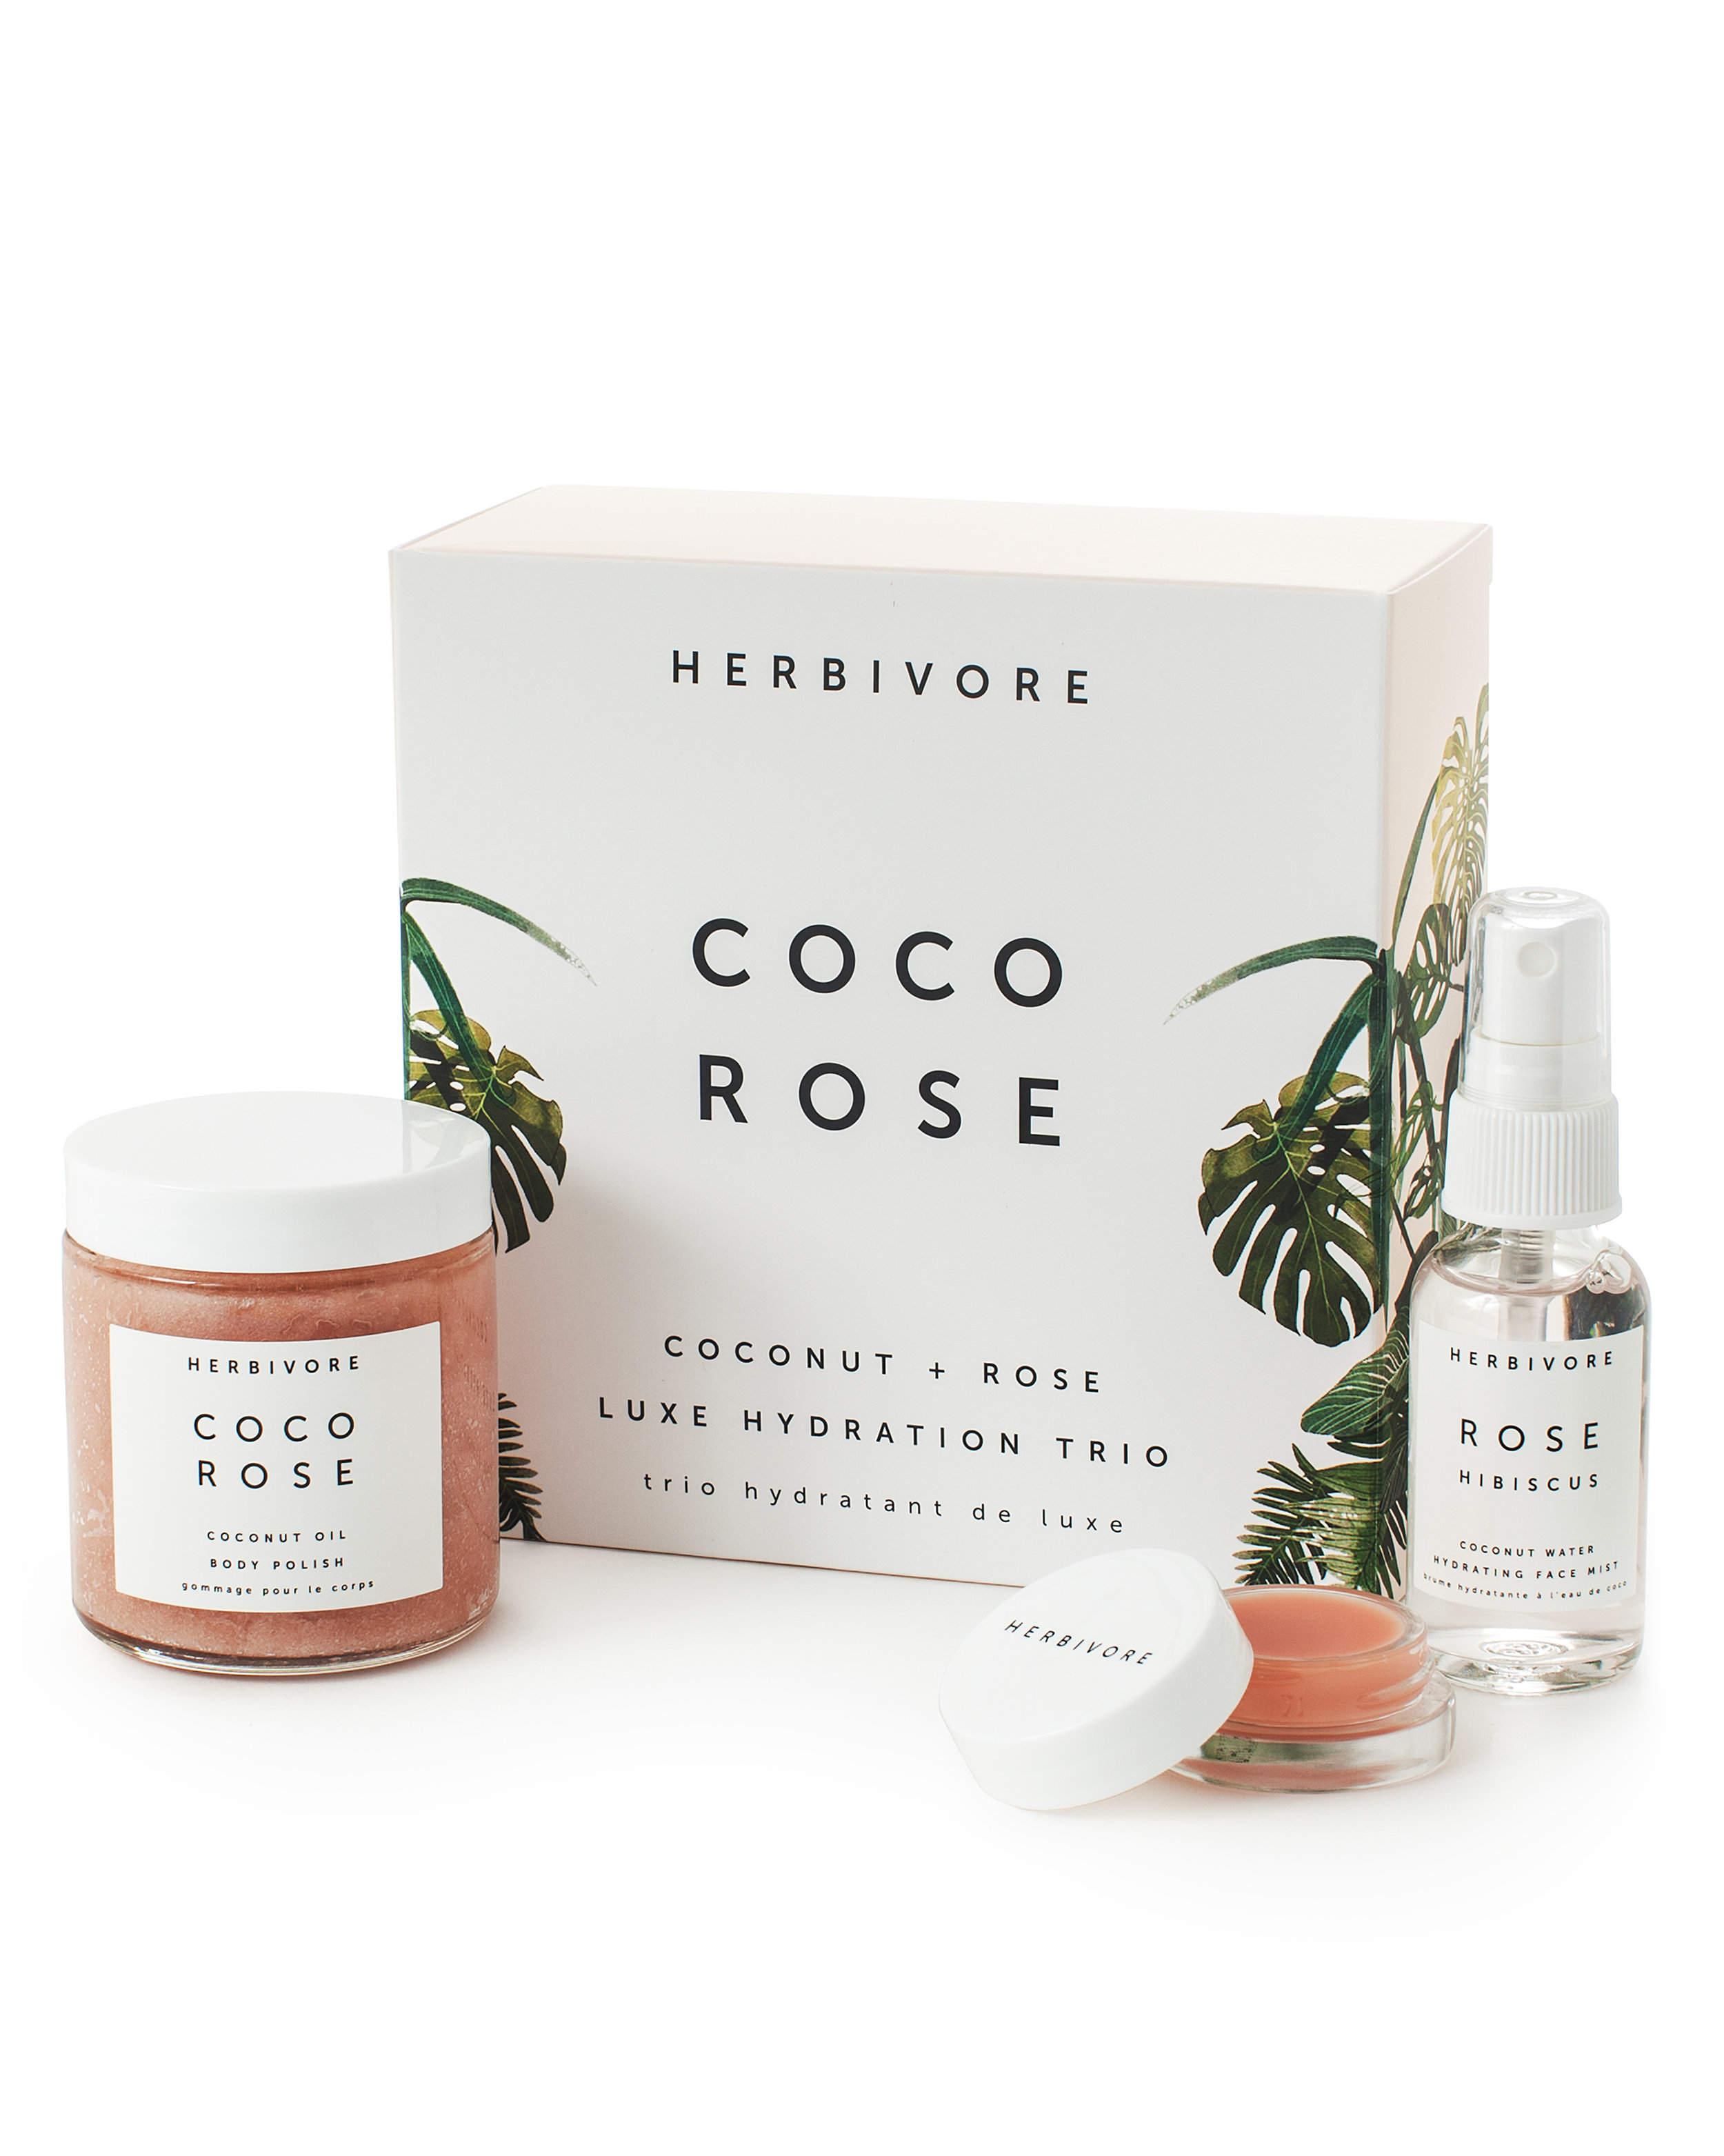 Rose Hydration Trio (Herbivore)